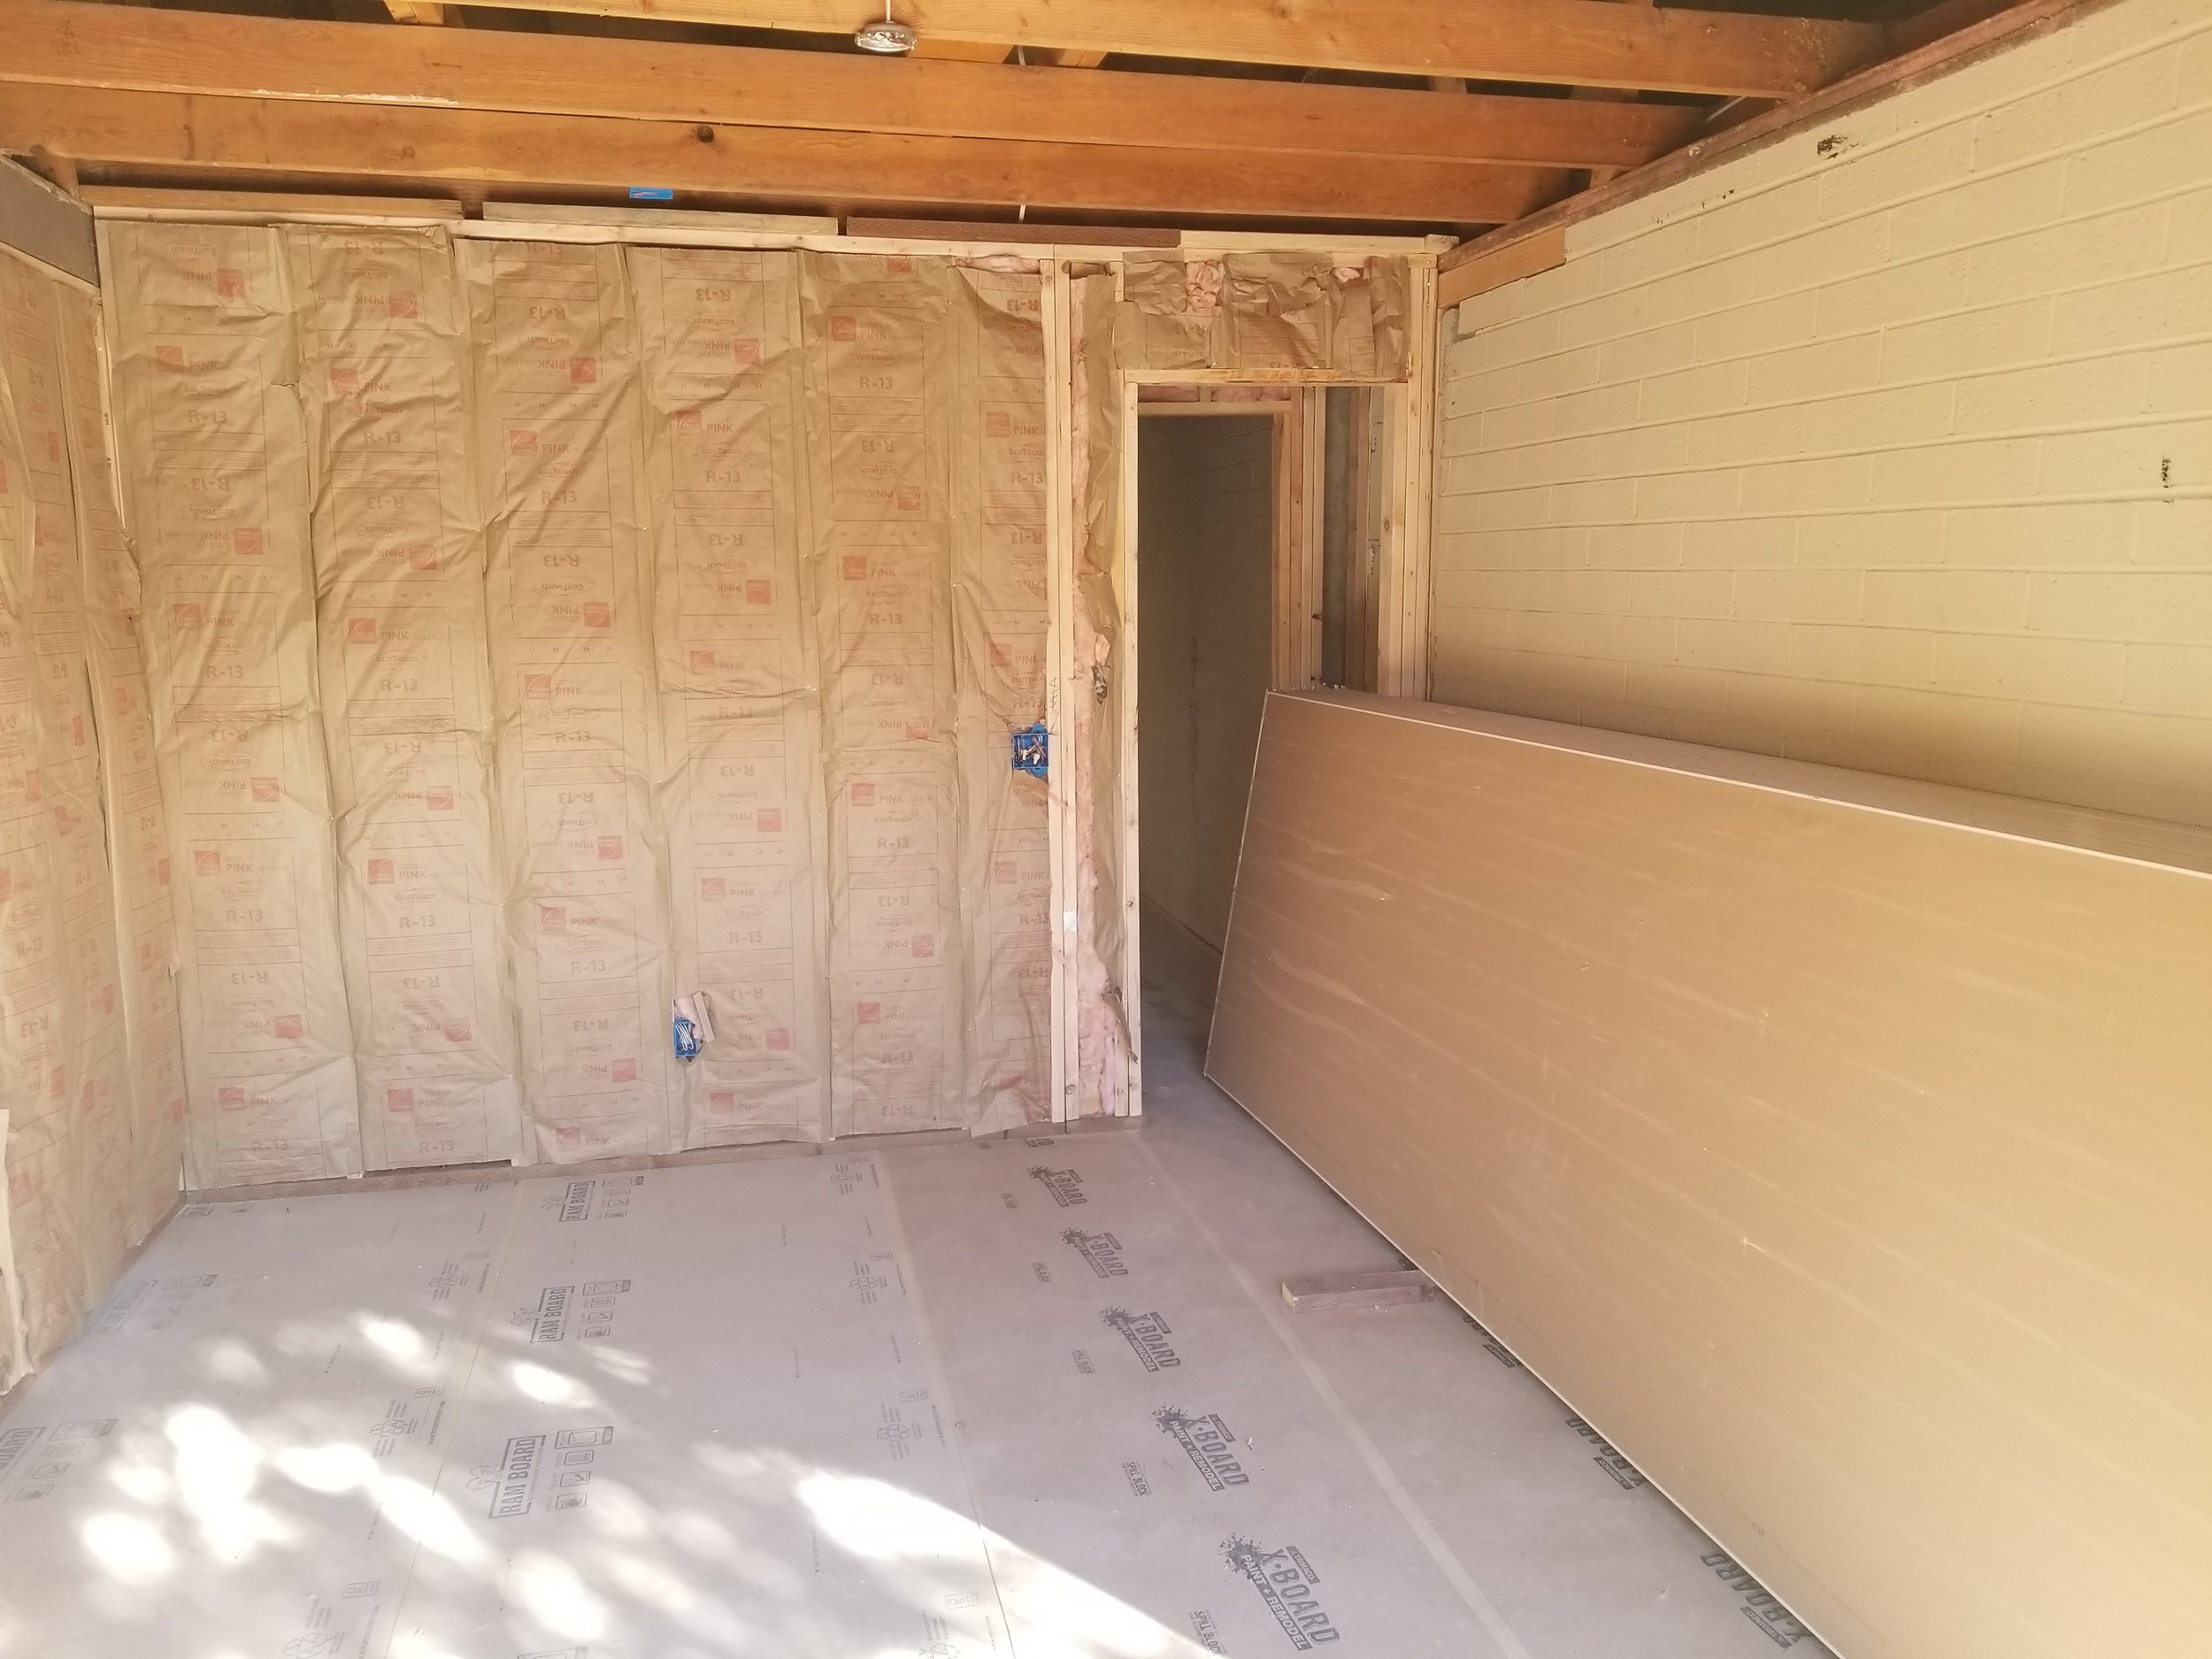 Framing complete, insulation installed, ready for sheetrock